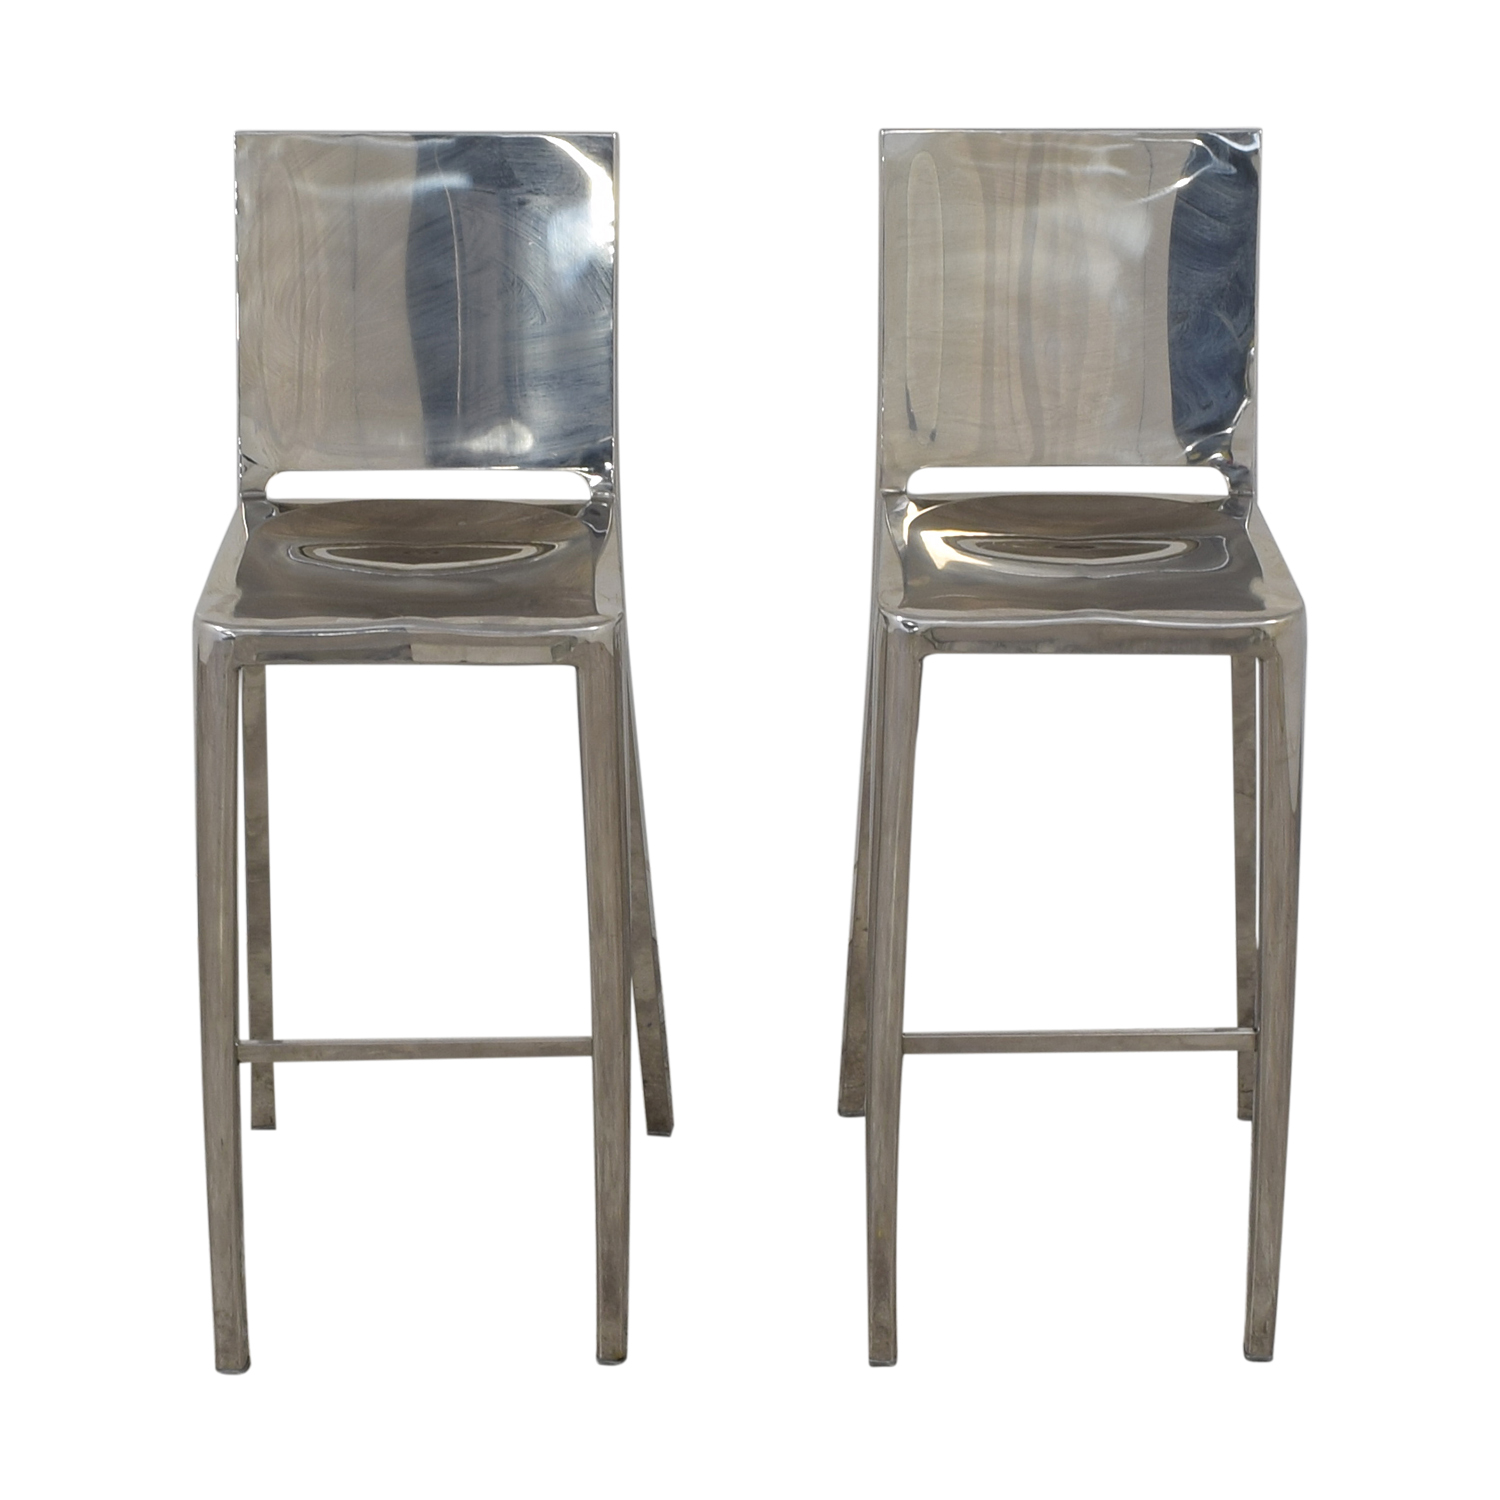 shop Modani Bar Stools Modani Chairs